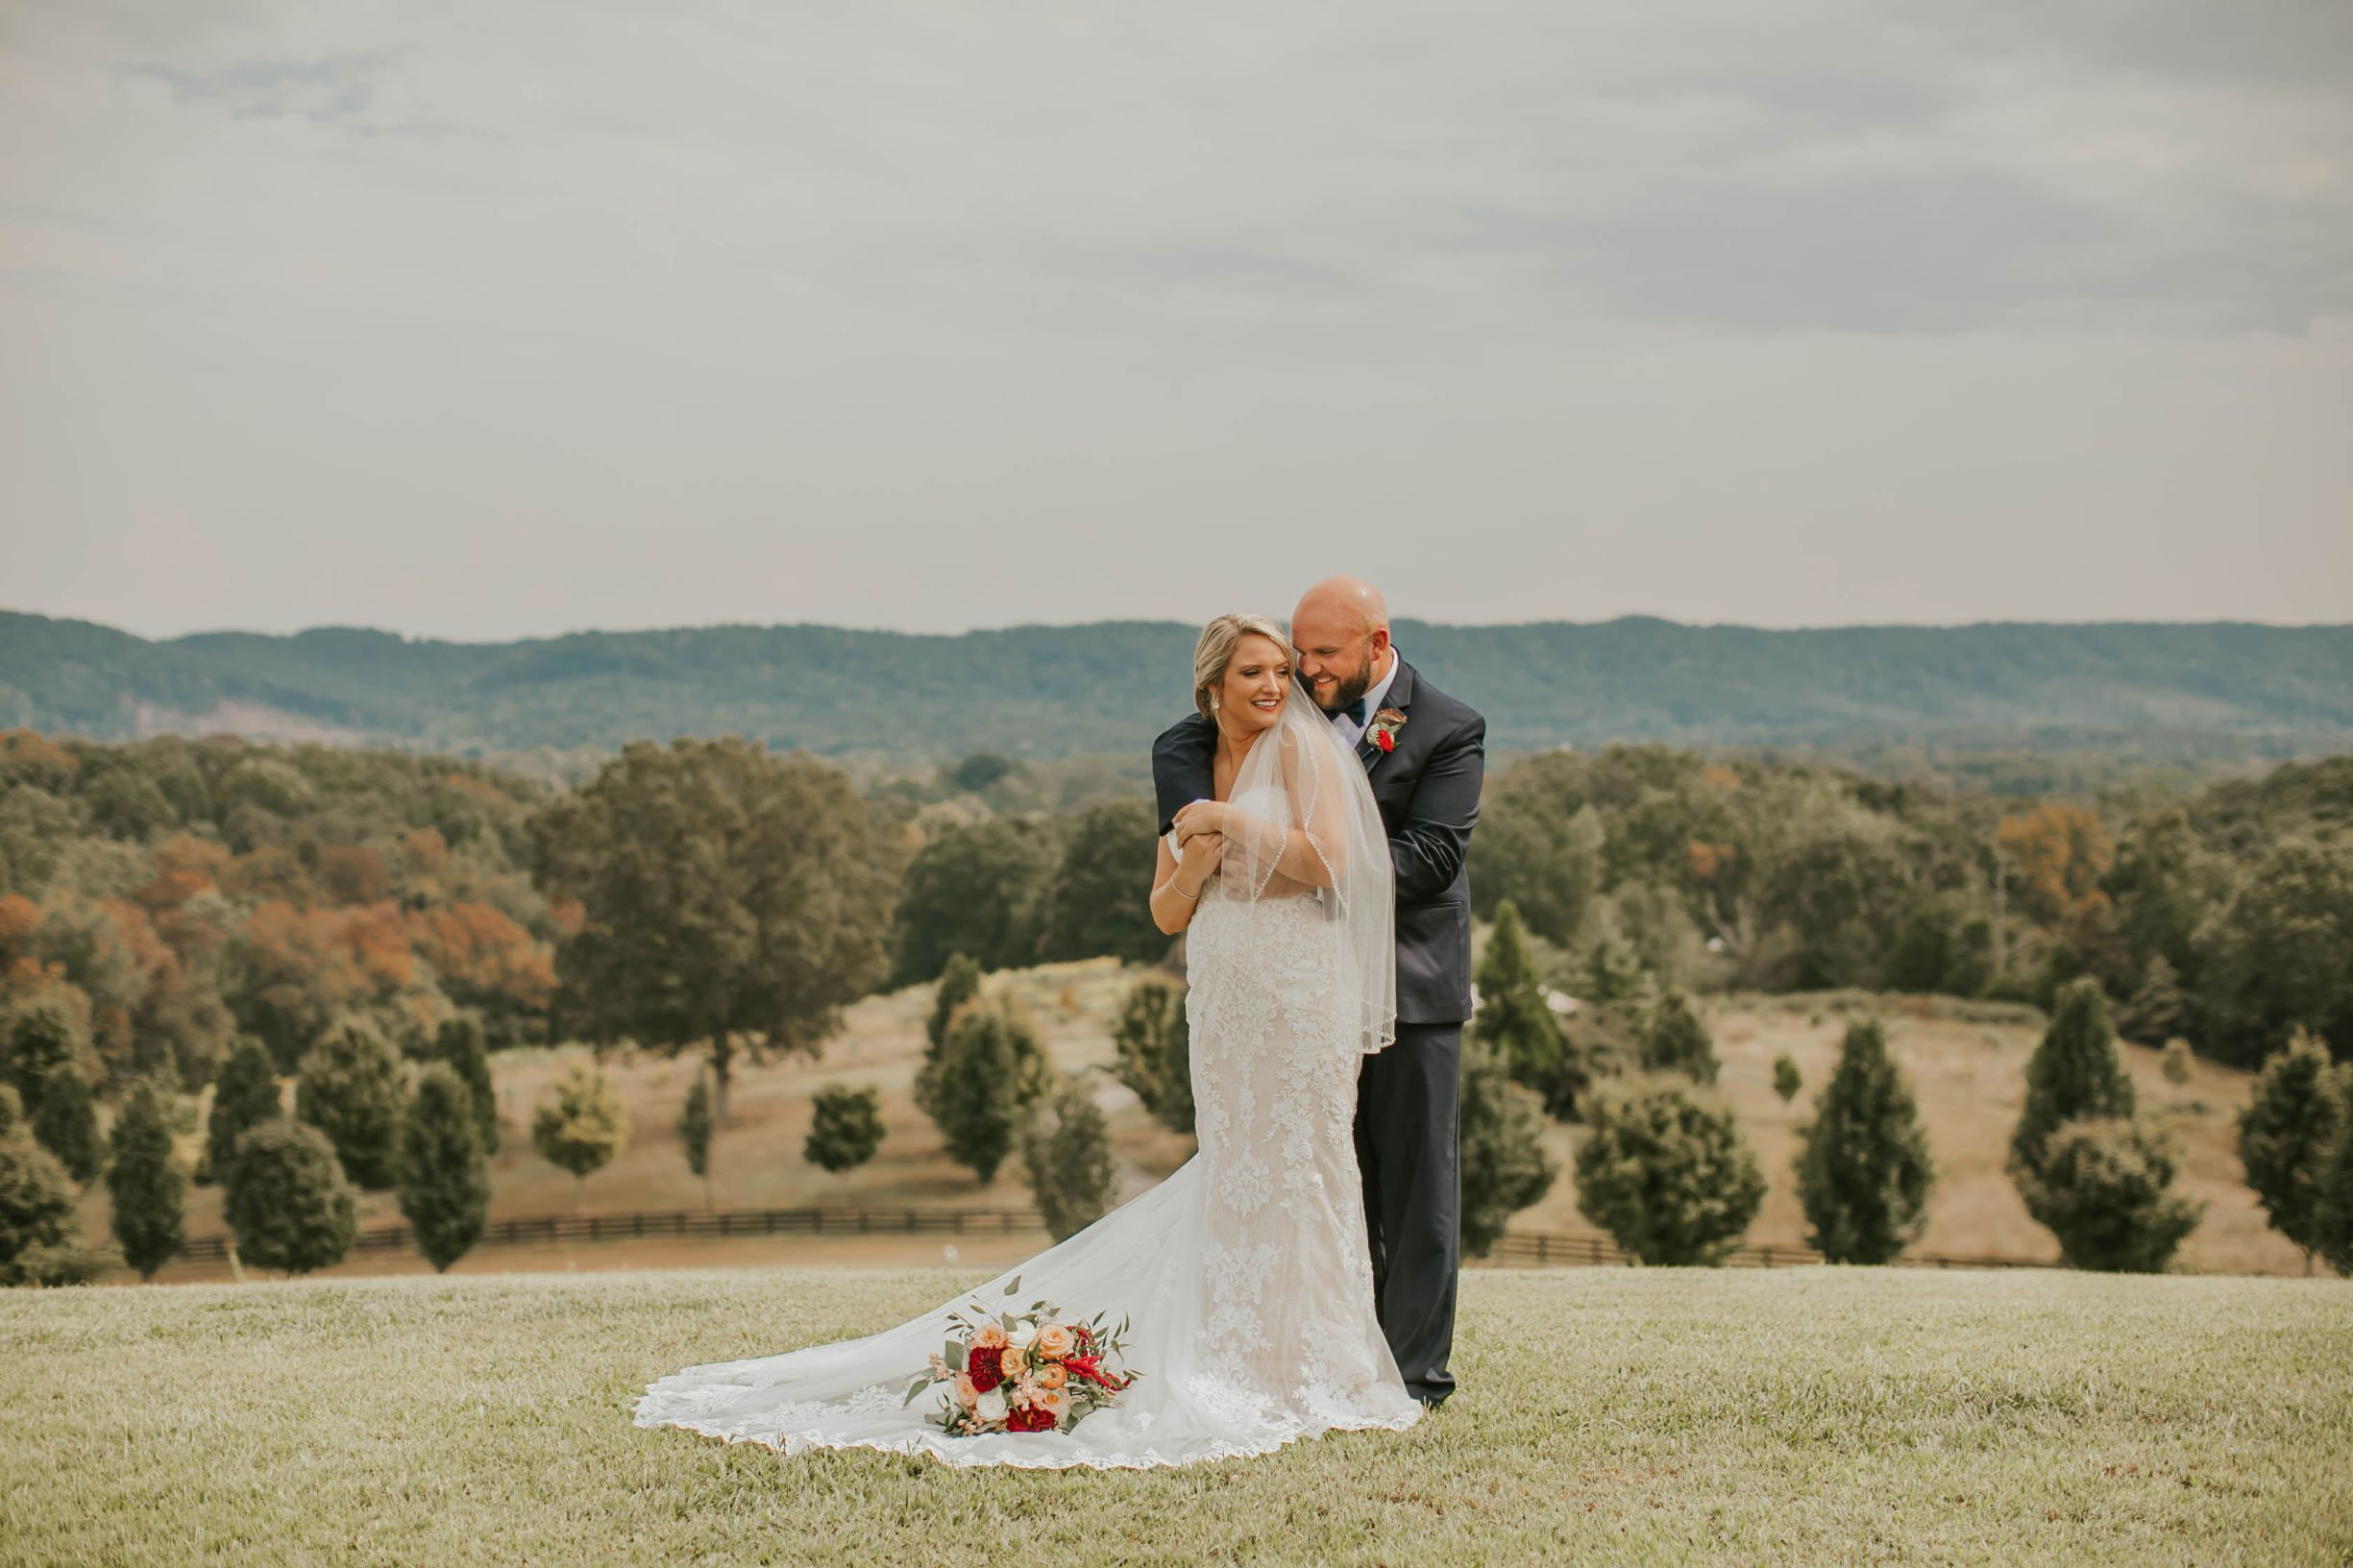 Our Chattanooga wedding venue offers endless photo opportunities both you and your photographer will just swoon over.